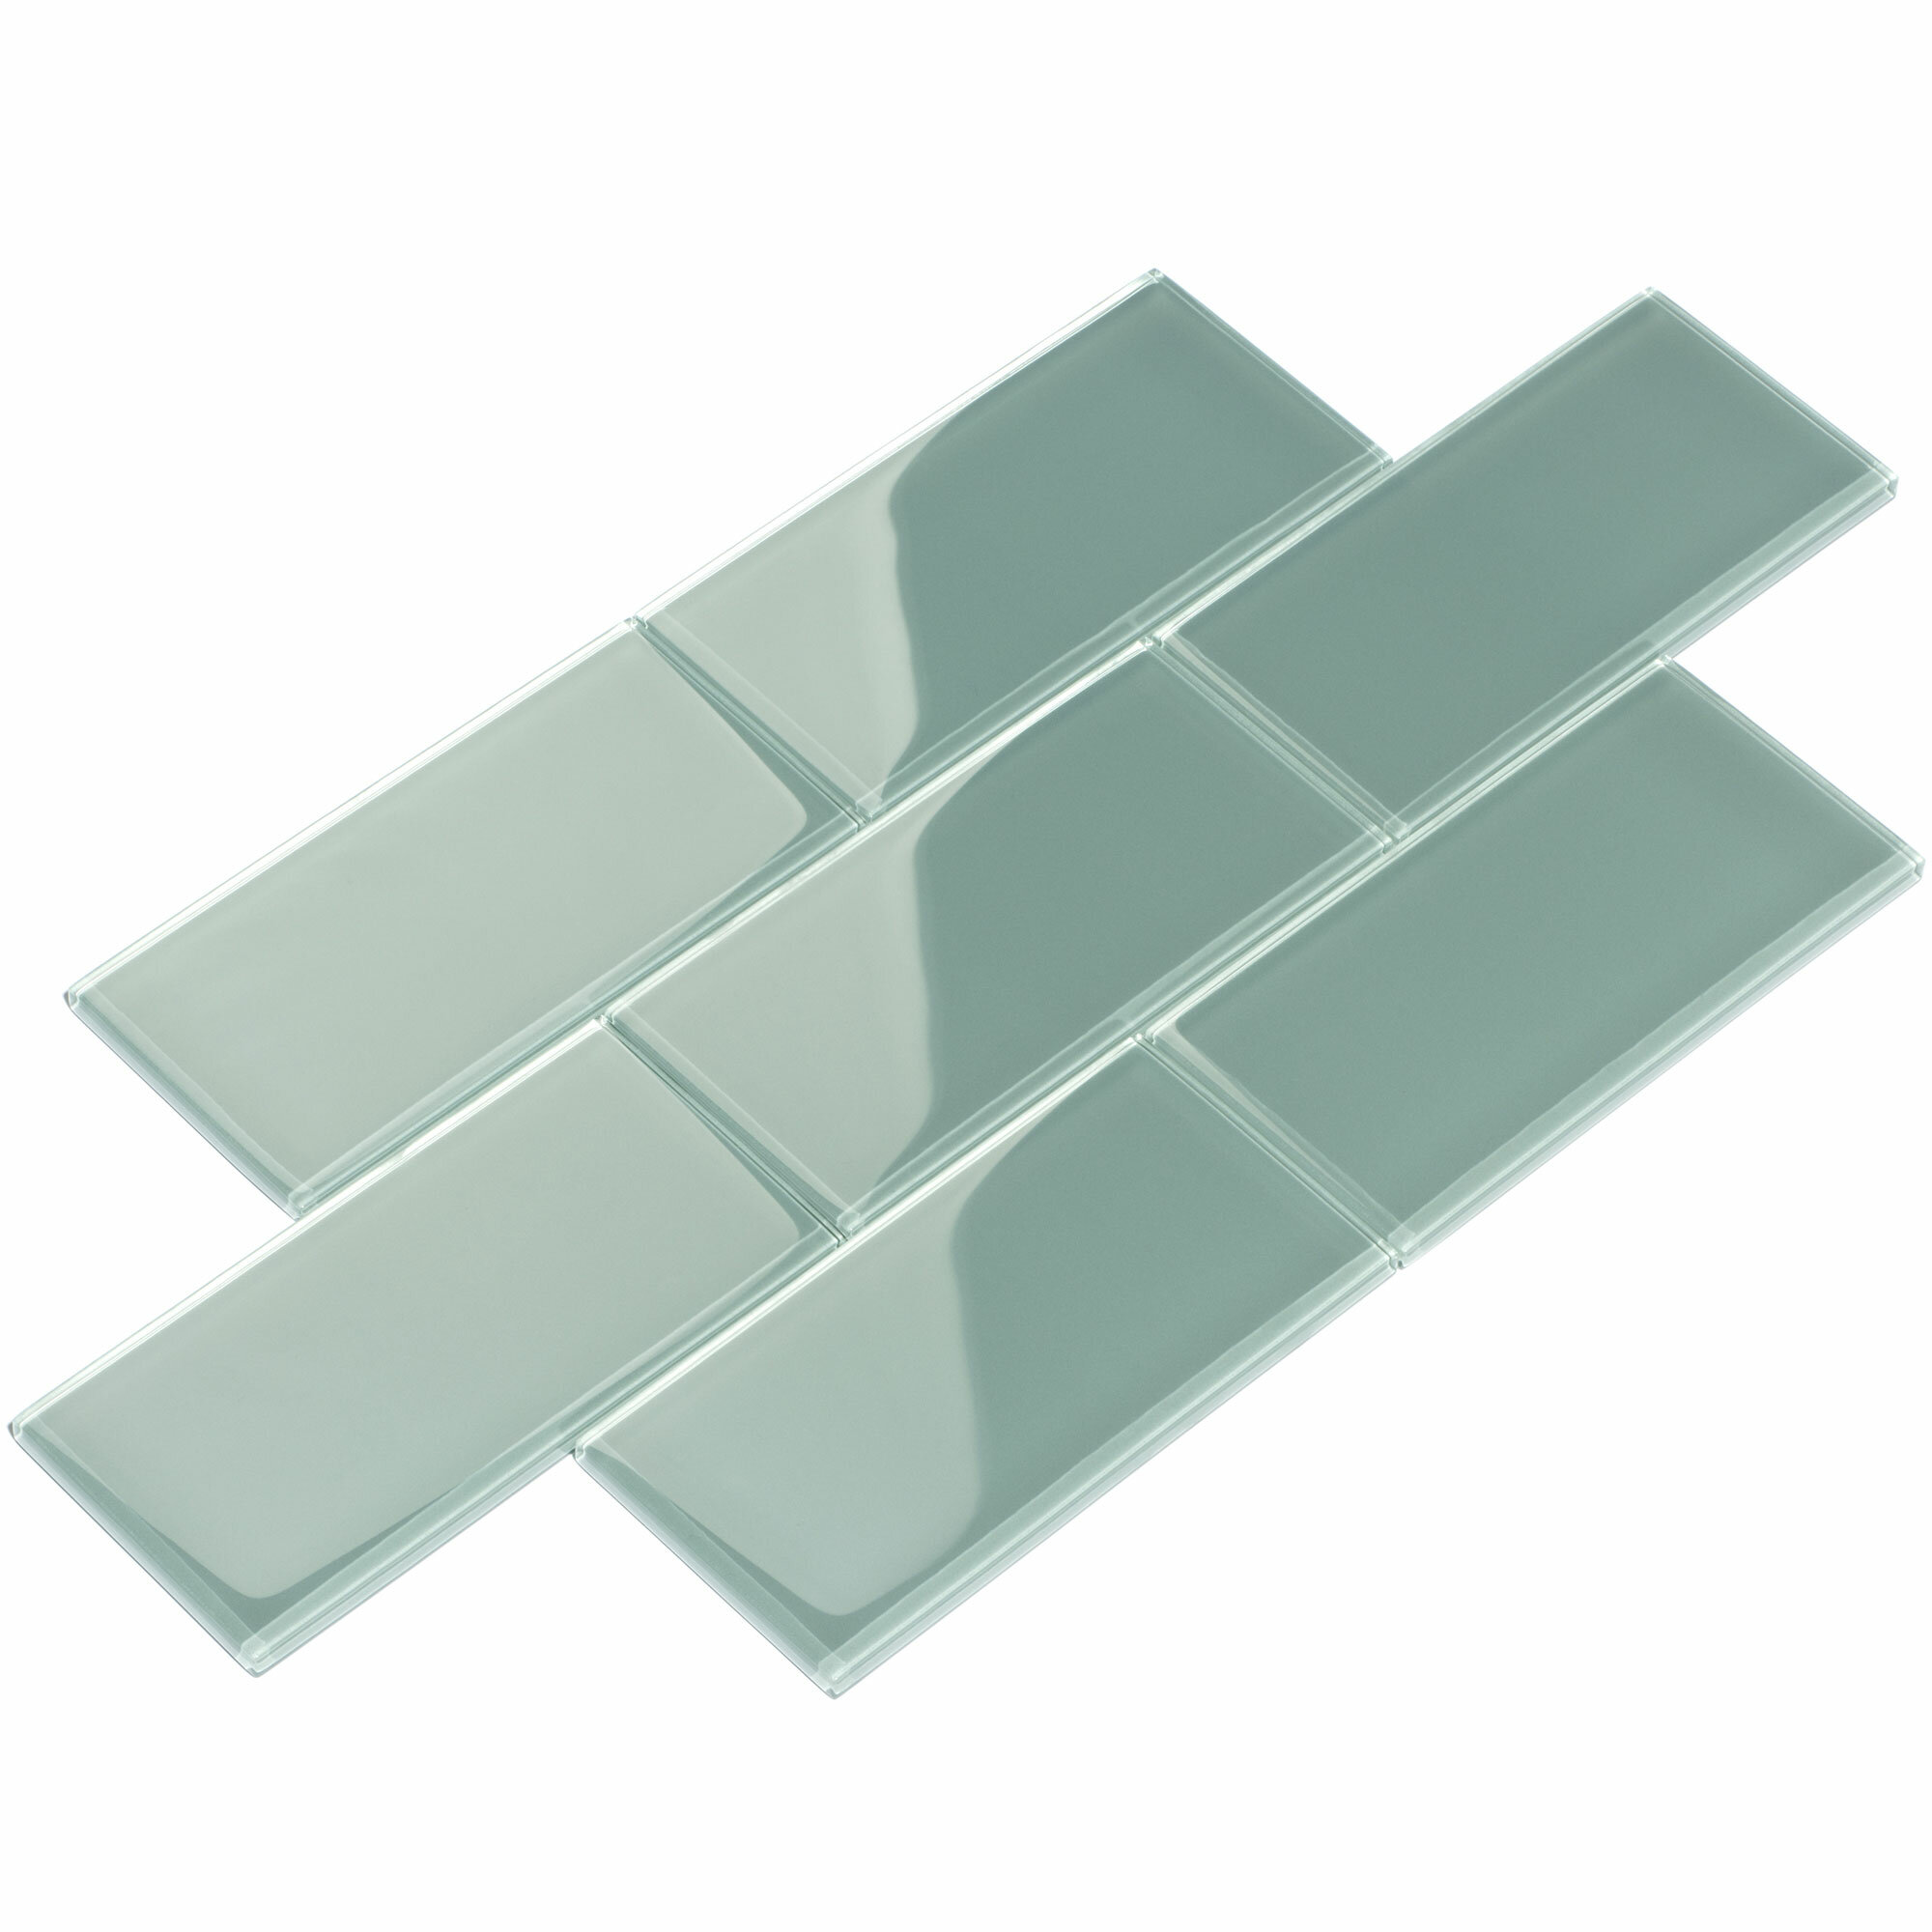 Giorbello 3 x 6 glass subway tile in slate reviews wayfair dailygadgetfo Choice Image